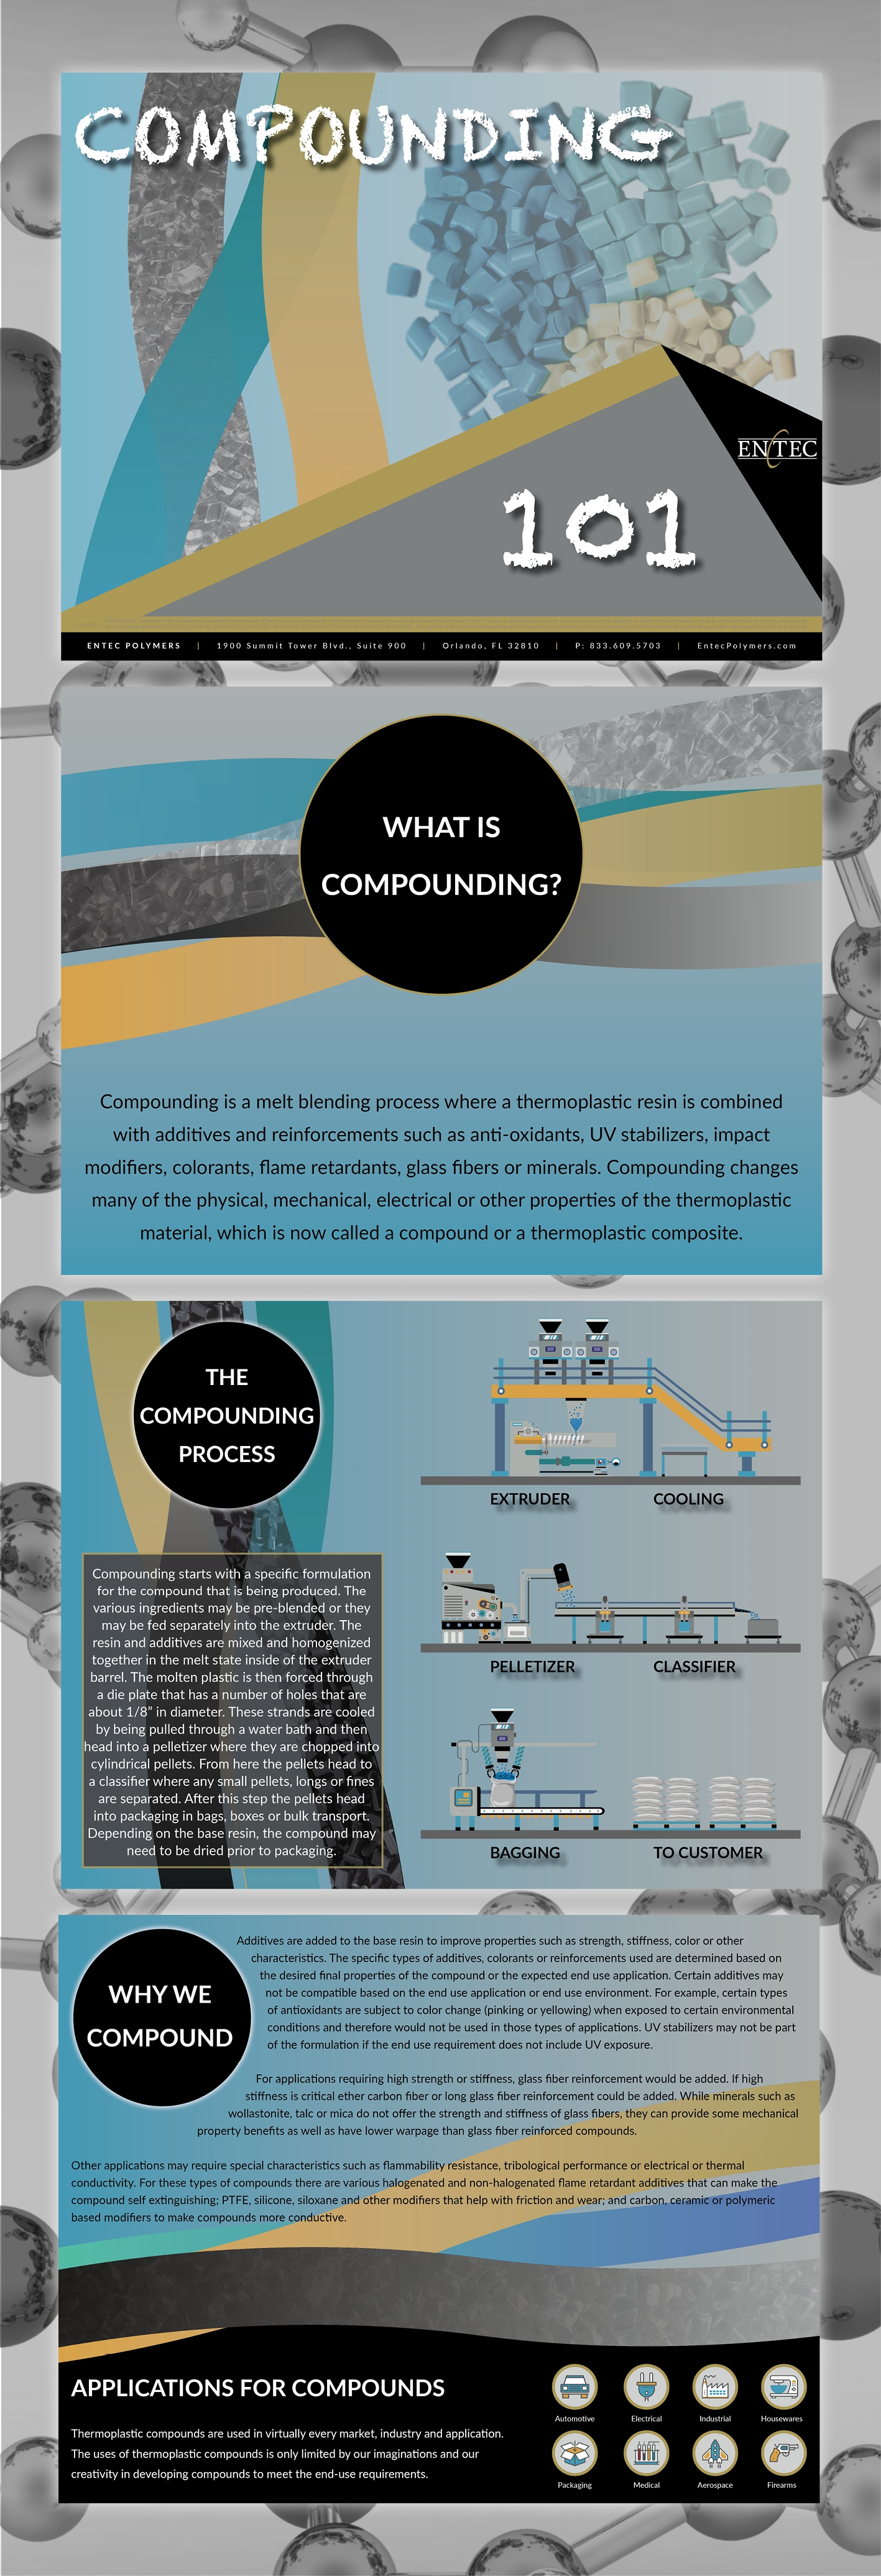 Compounding-101-Body-Umage